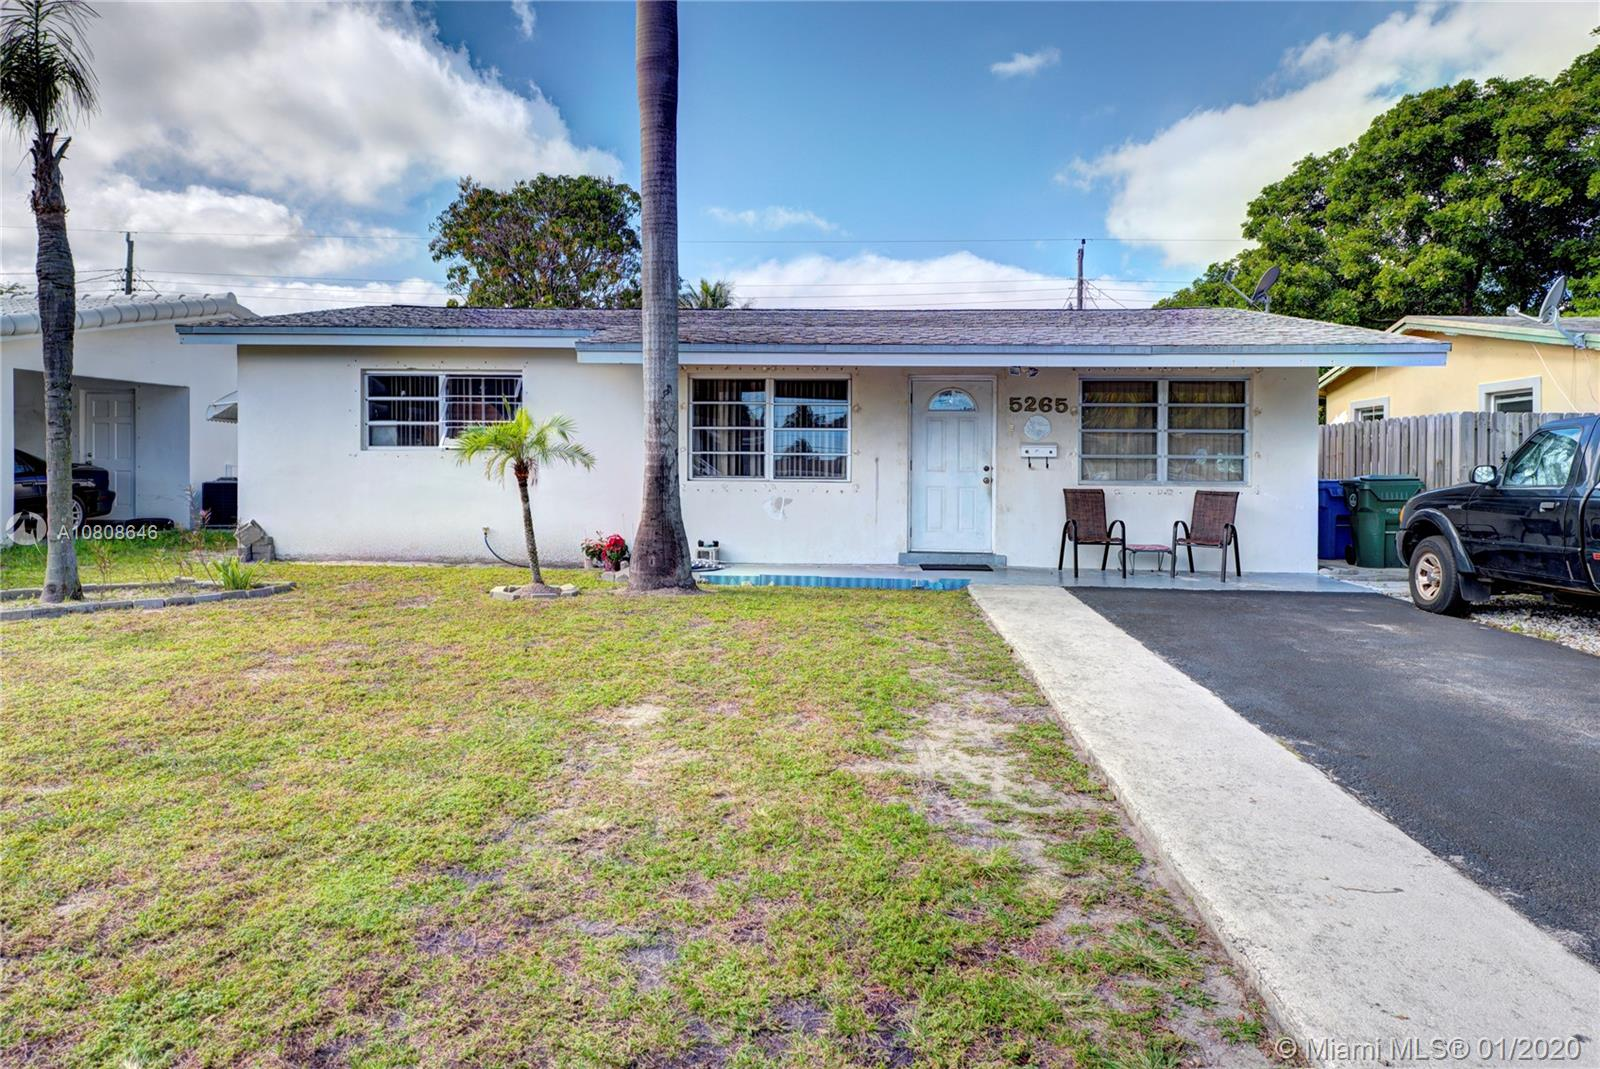 COZY 2/1 HAS BEEN USED AS 3/1. TILE THROUGHOUT, SPACIOUS YARD. CLOSE TO BEACHES AND SHOPPING!! HURRY, WON'T LAST!!!